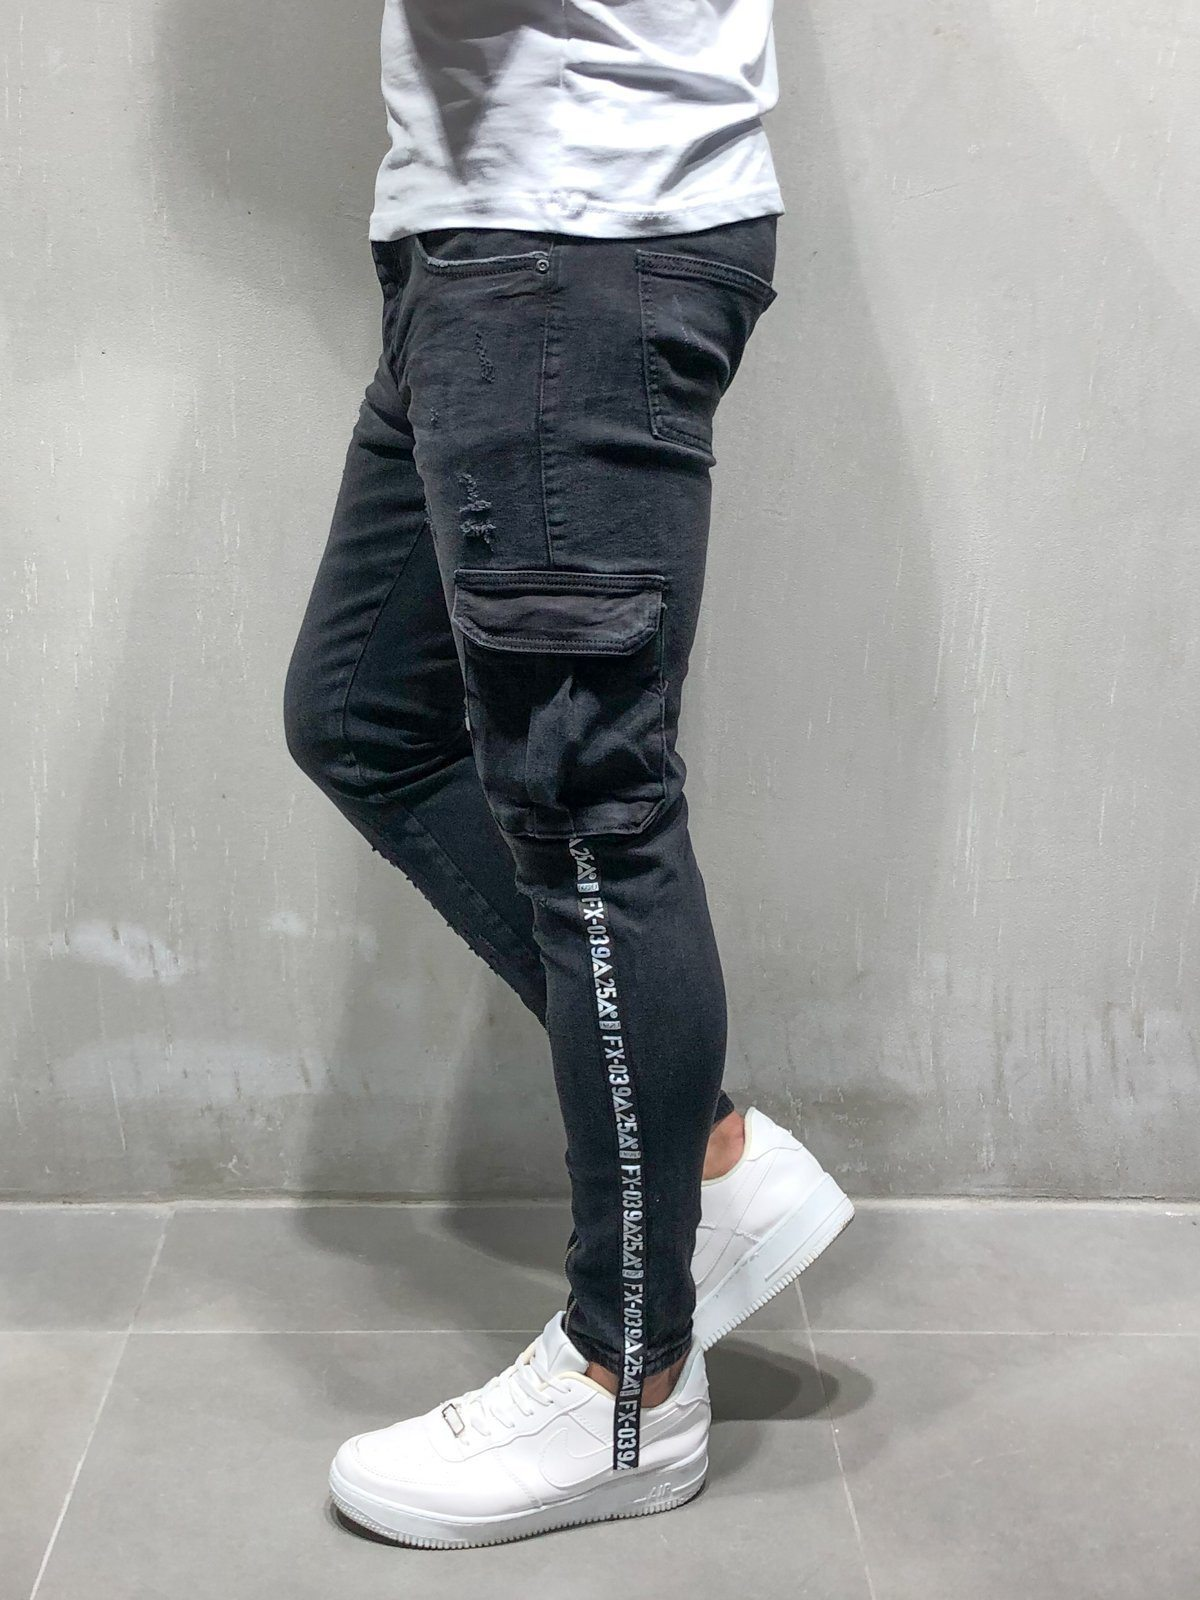 f1c5cb88cff Distressed Cargo Jeans Ankle Zipper - Black in 2019 | Jeans | Cargo ...